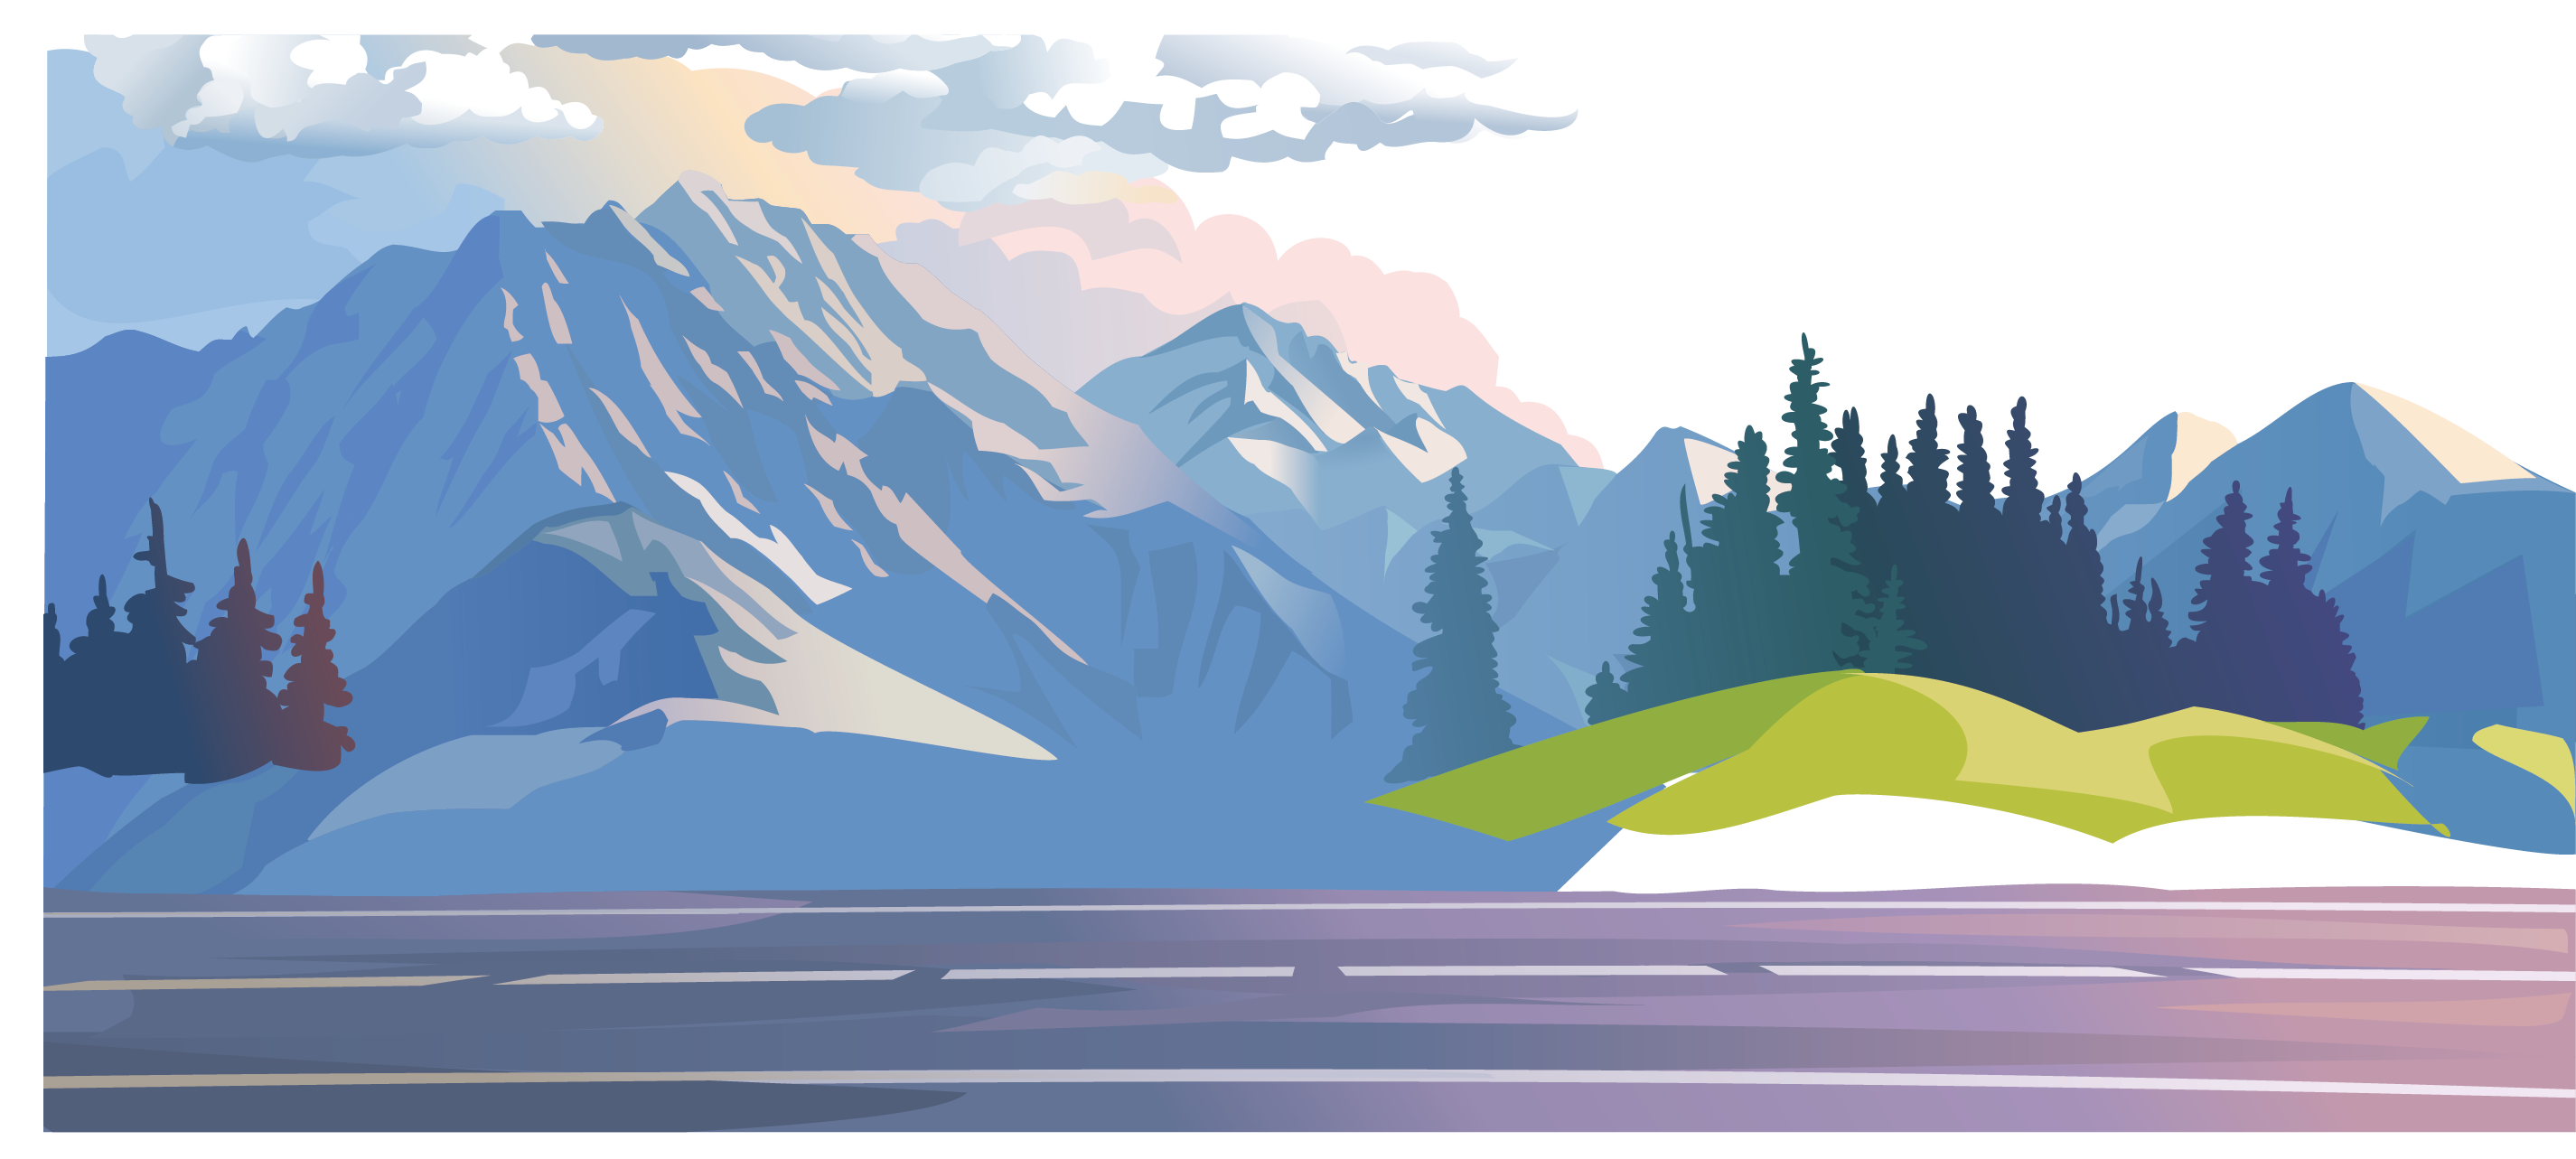 png library library Arctic free on dumielauxepices. Mountains clipart sea.